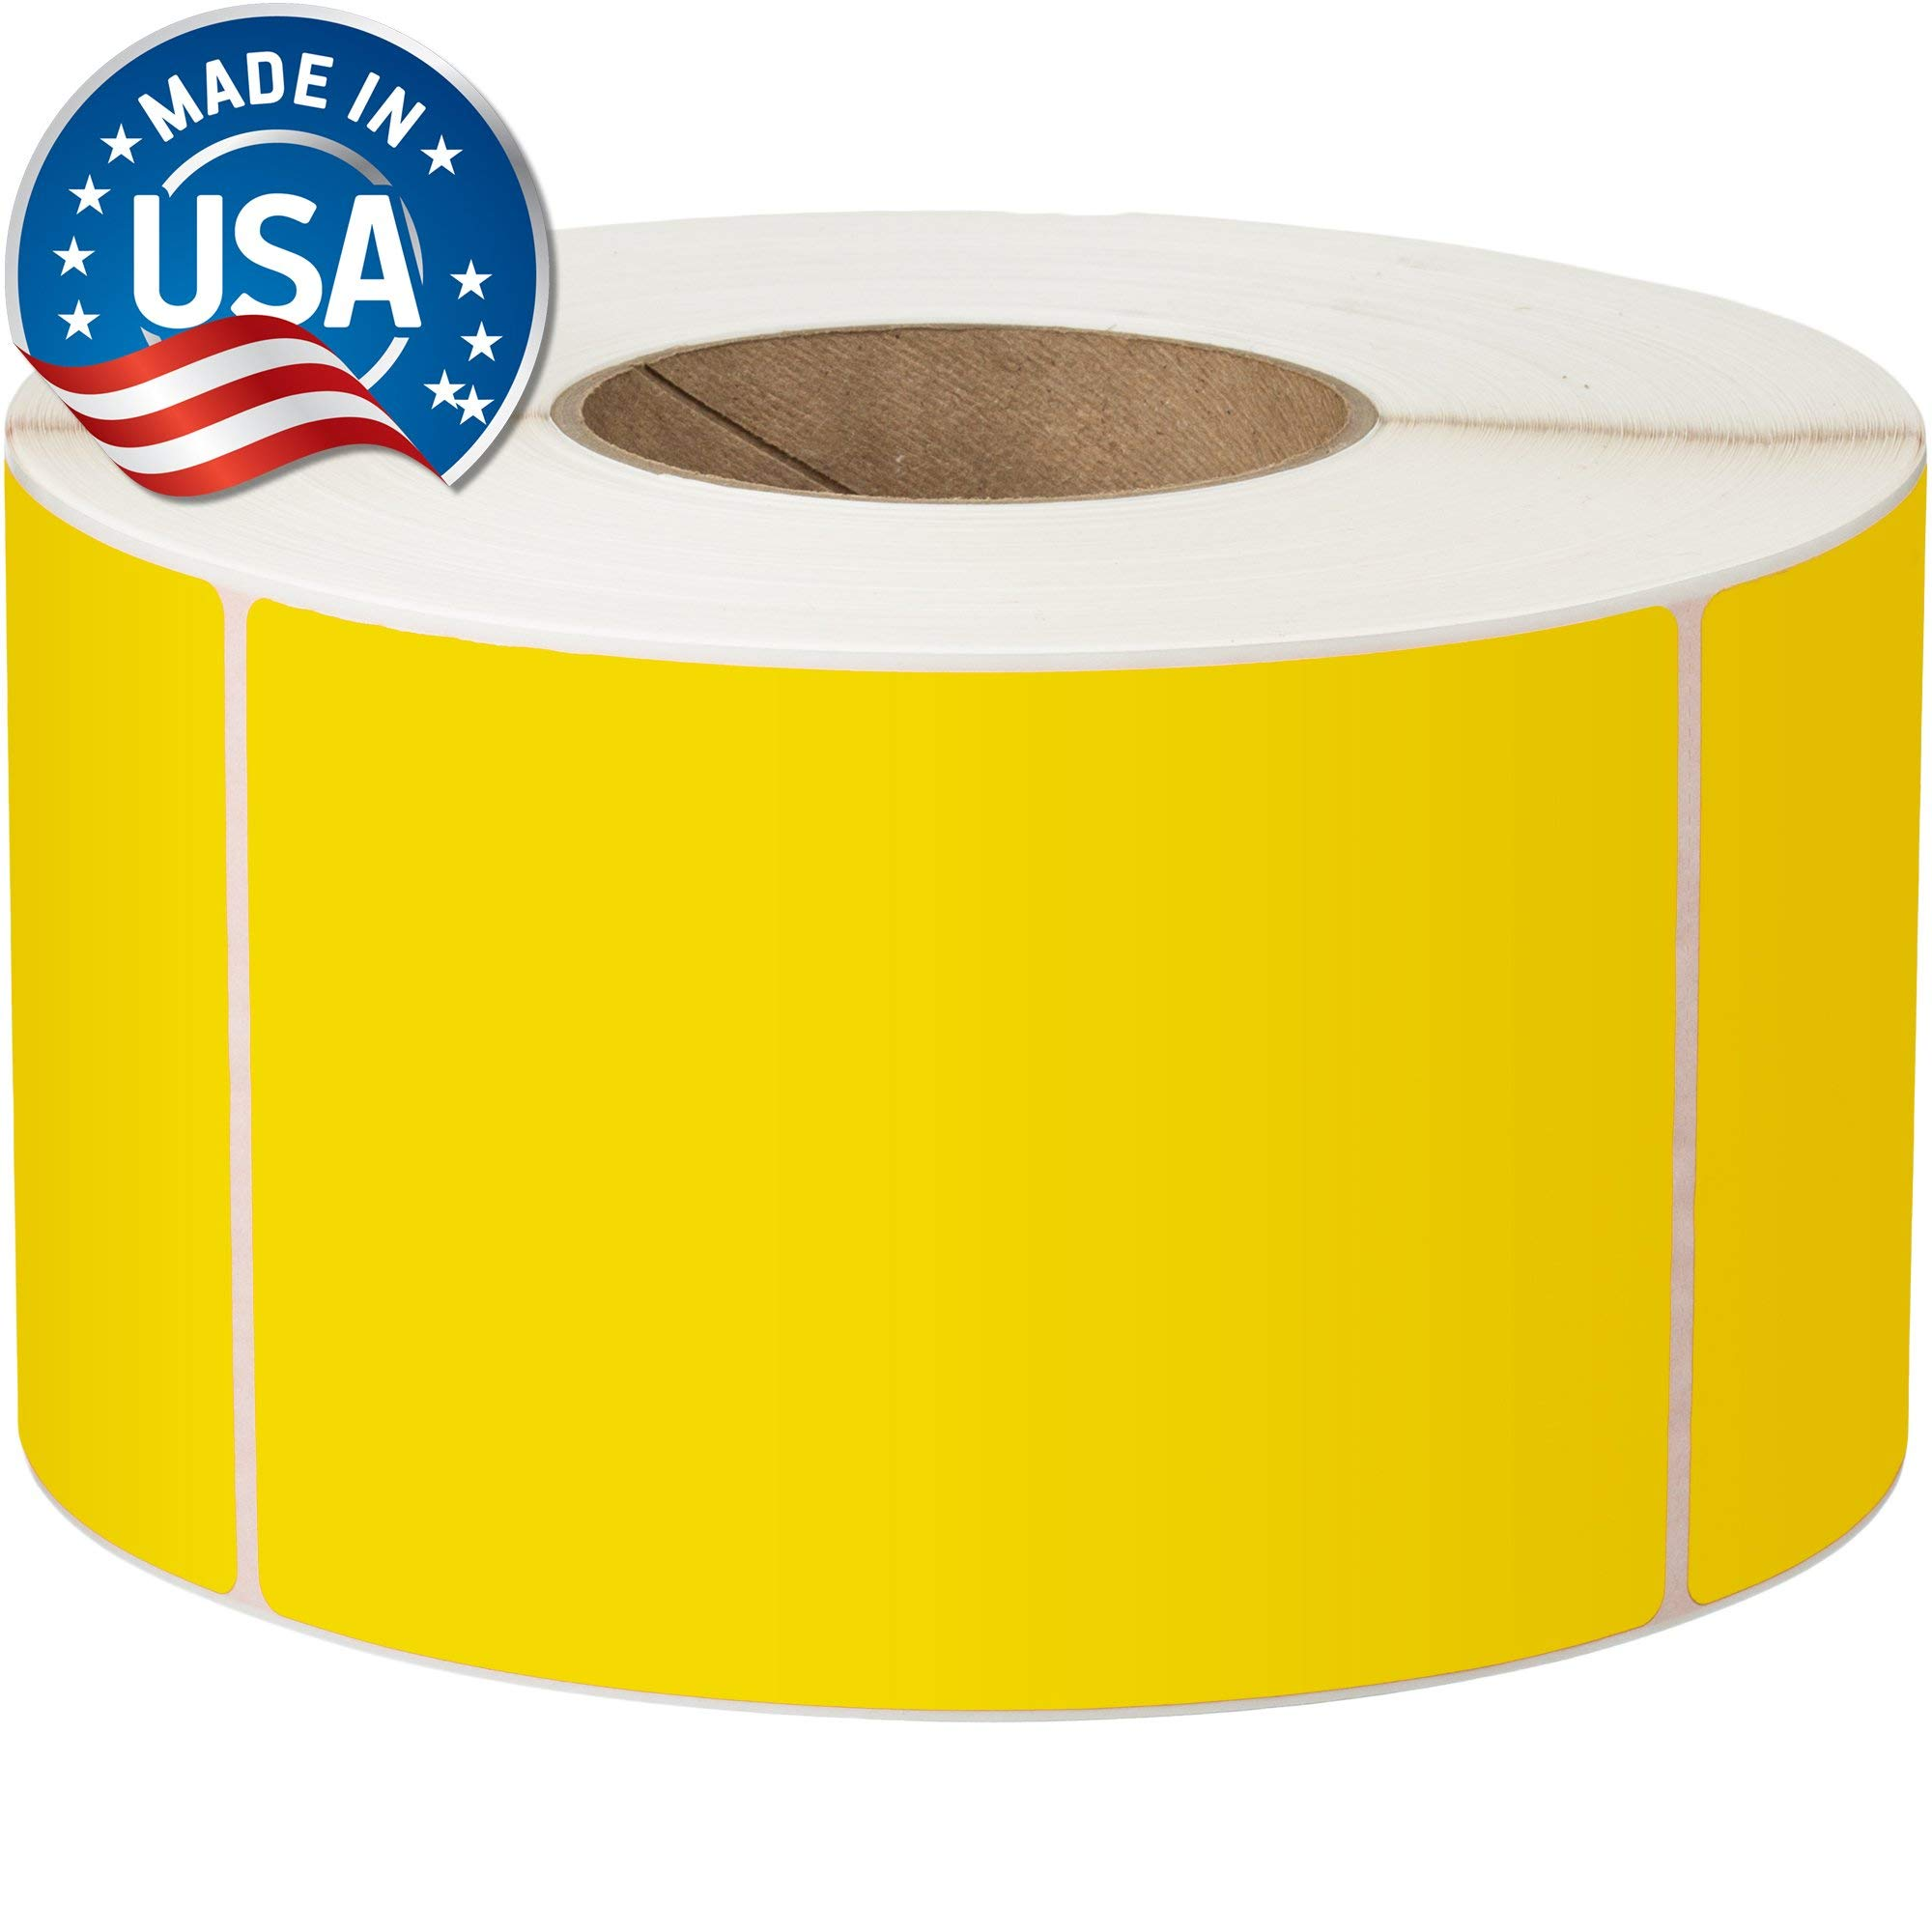 Direct Thermal Labels - 4'' x 6'' - Yellow - 3'' Core - Works with Zebra Thermal Desktop Printers, Datamax, Sato, Intermec and Honeywell Printers - Made in USA by Labels for Us